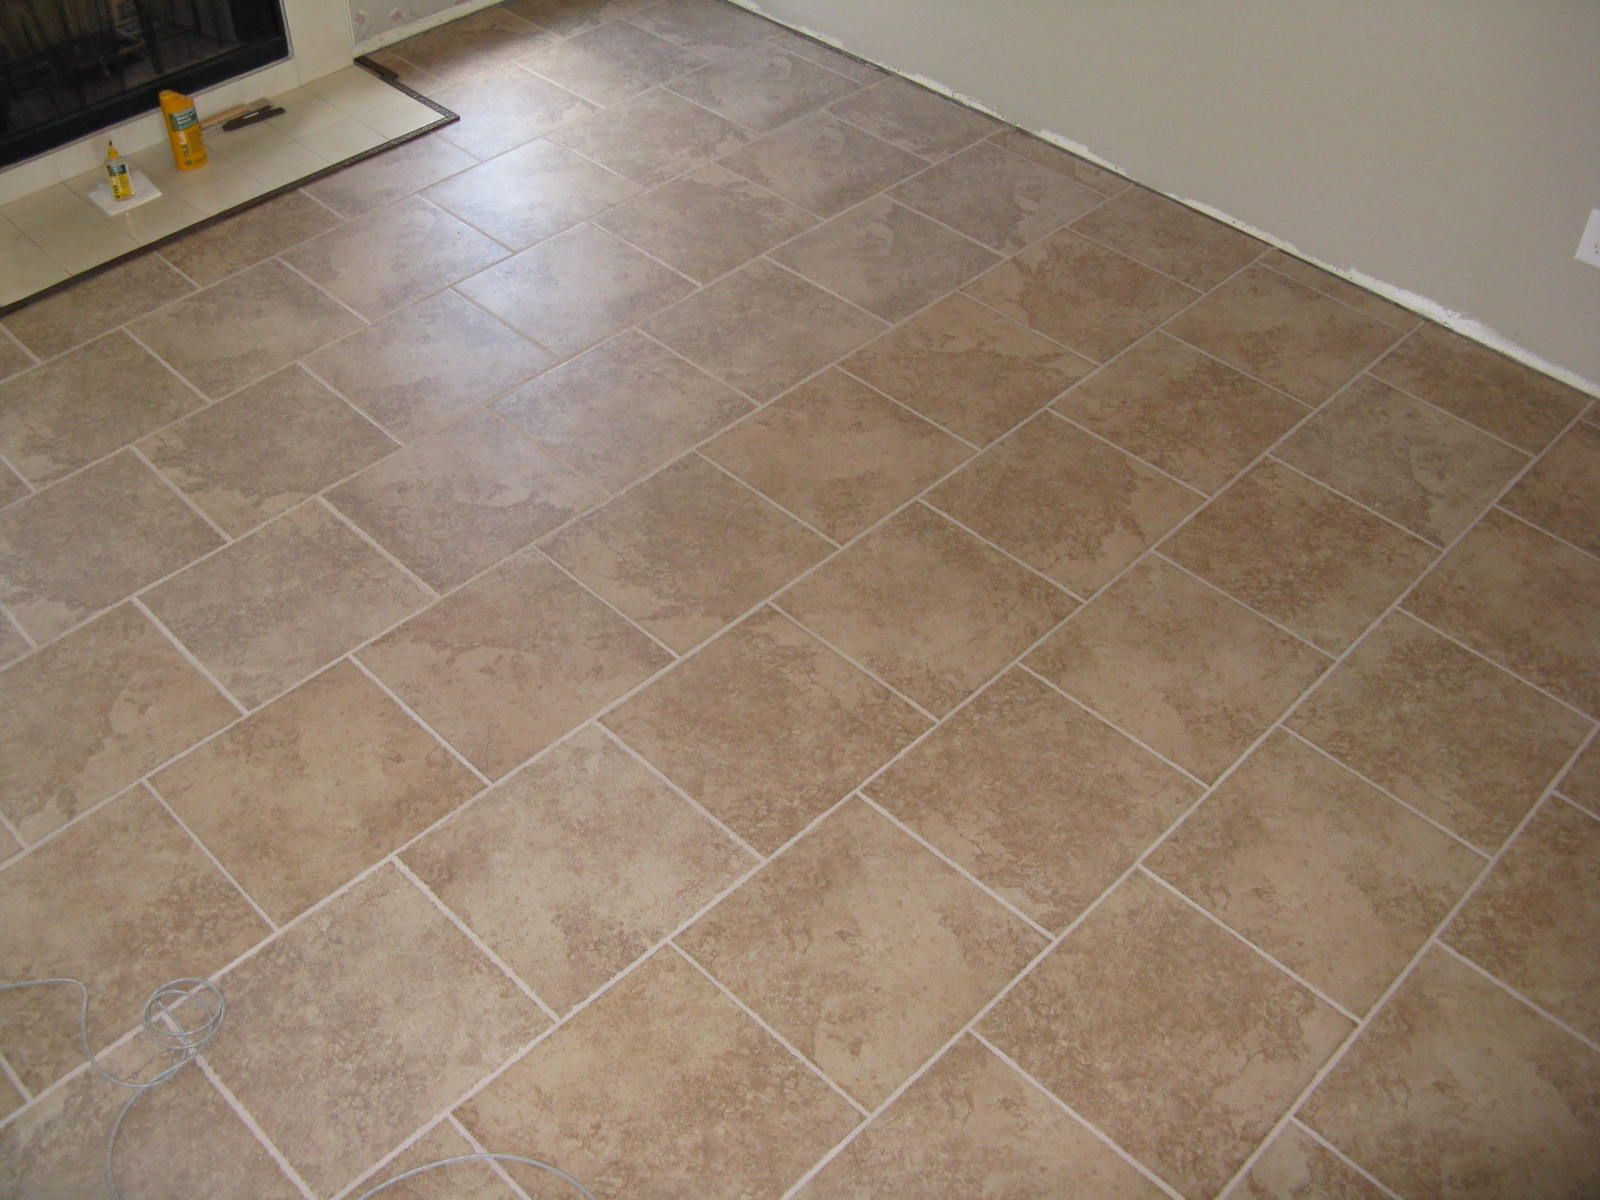 Ceramic Tile Work Design Tile Floor Flooring Patterned Floor Tiles